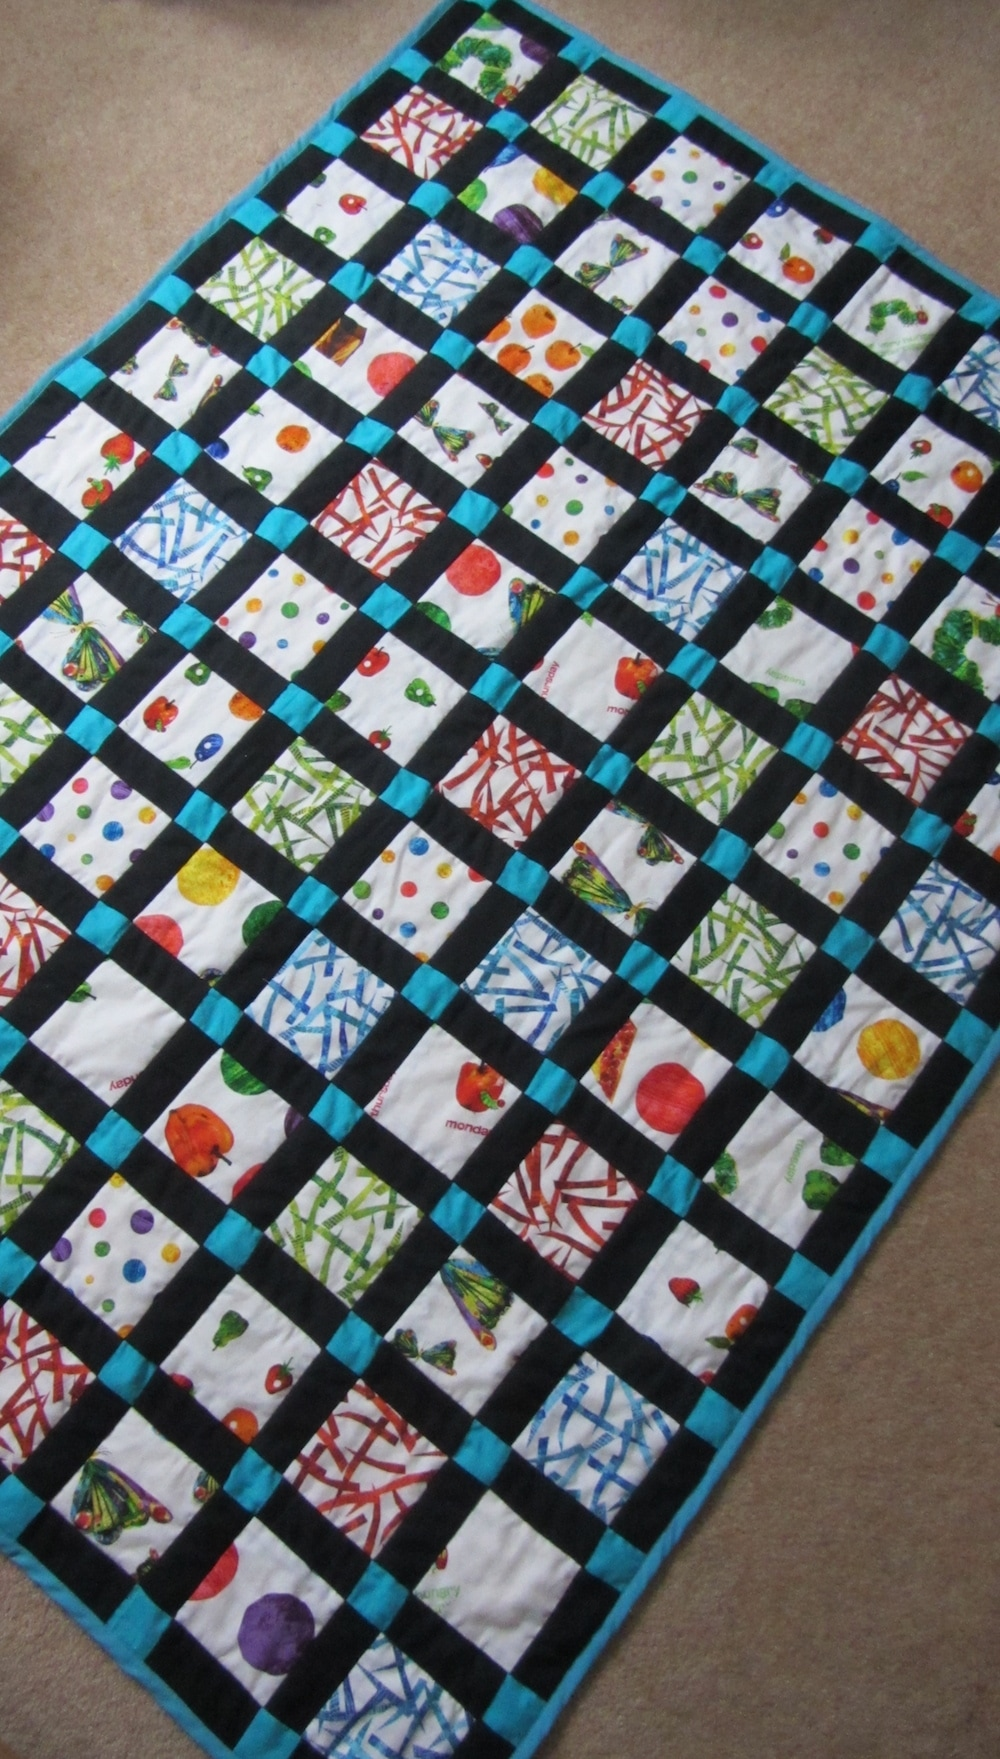 Hungary Caterpillar Quilt.jpg